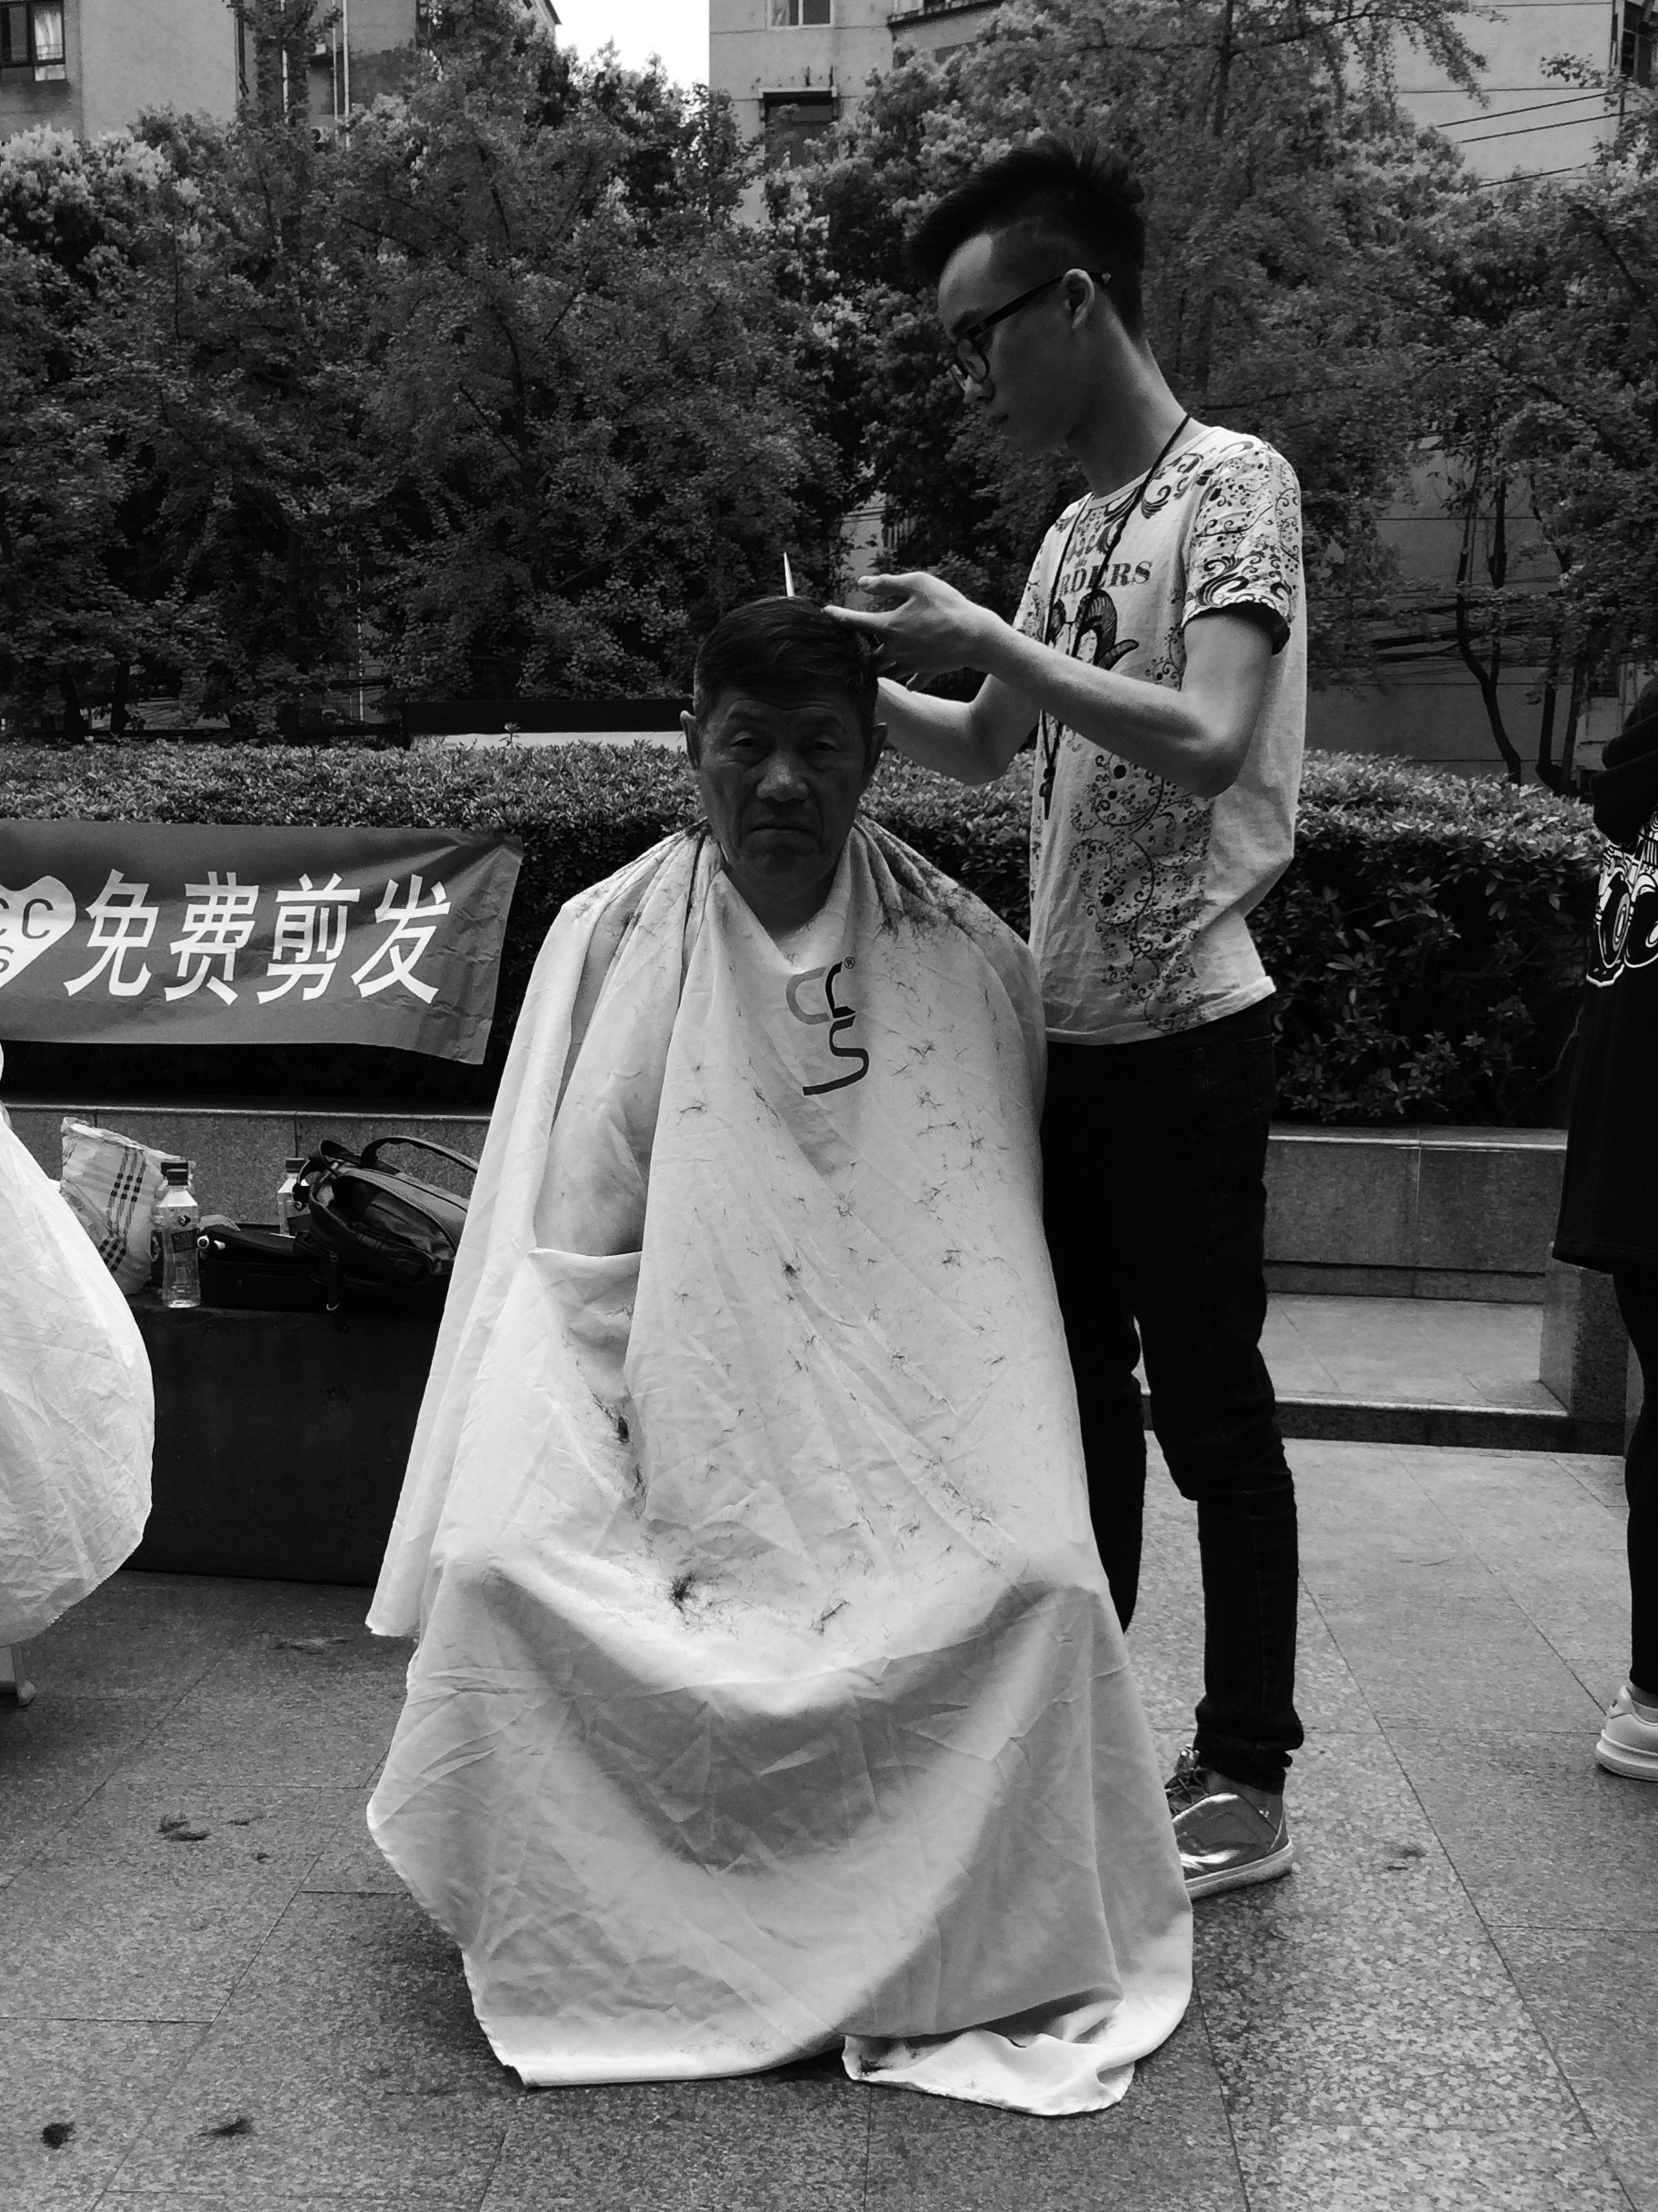 Hair cuts in the park